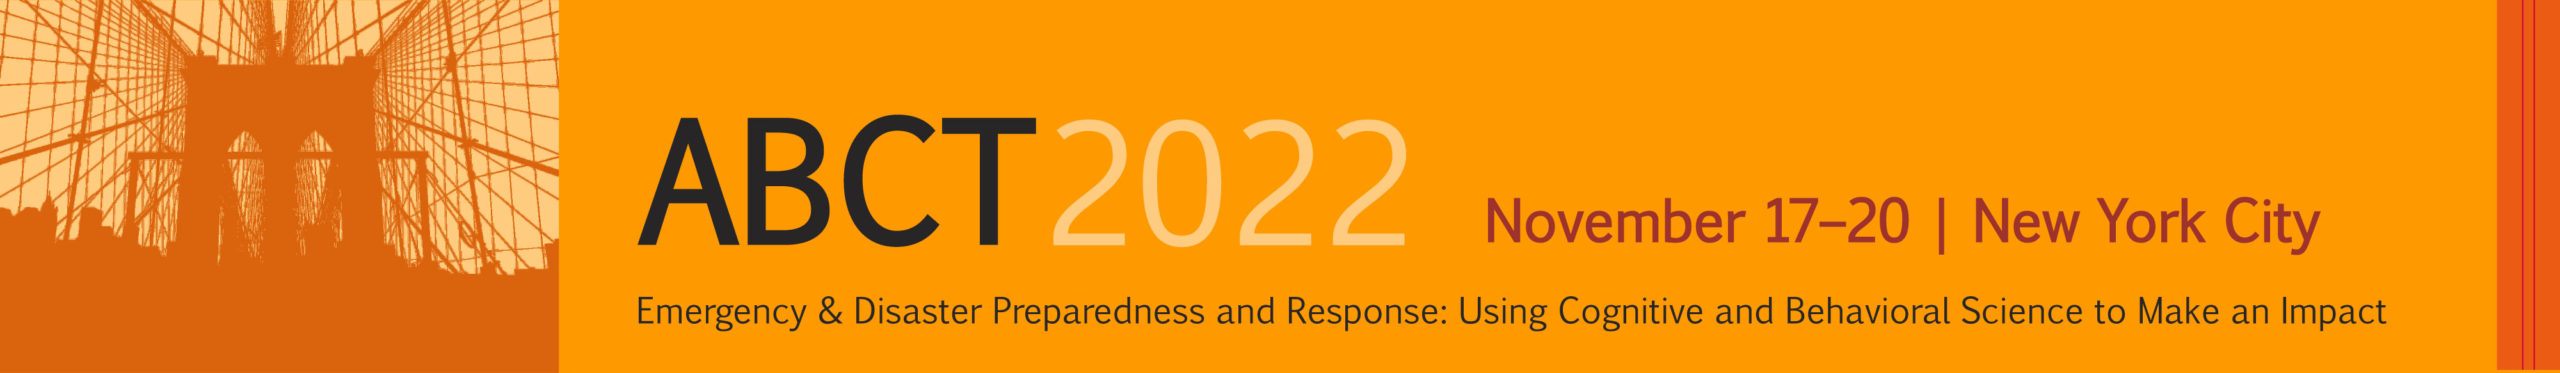 2022 Call for Abstracts